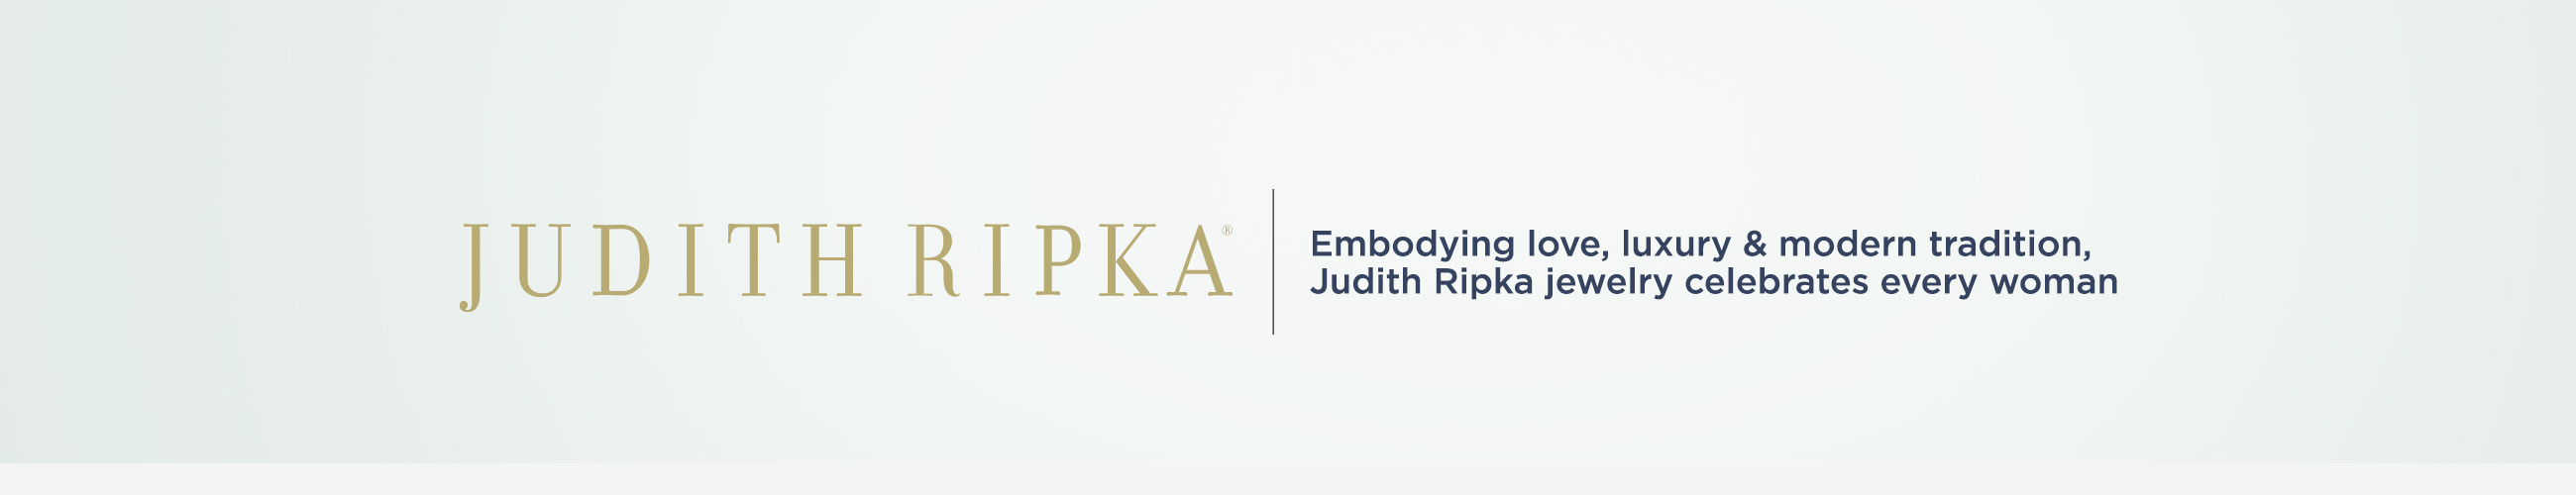 Judith Ripka -- Embodying love, luxury & modern tradition, Judith Ripka jewelry celebrates every woman